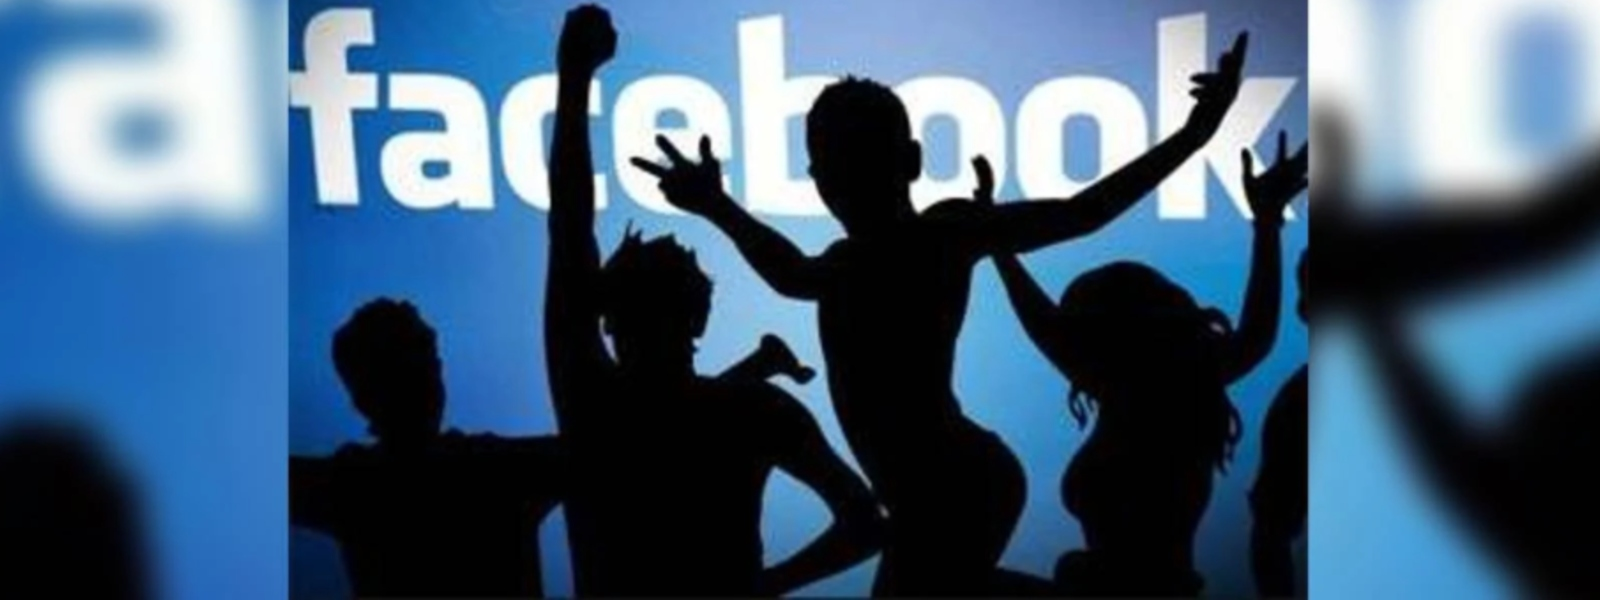 28 arrested in Akmeemana for organizing a Facebook party: SL Police